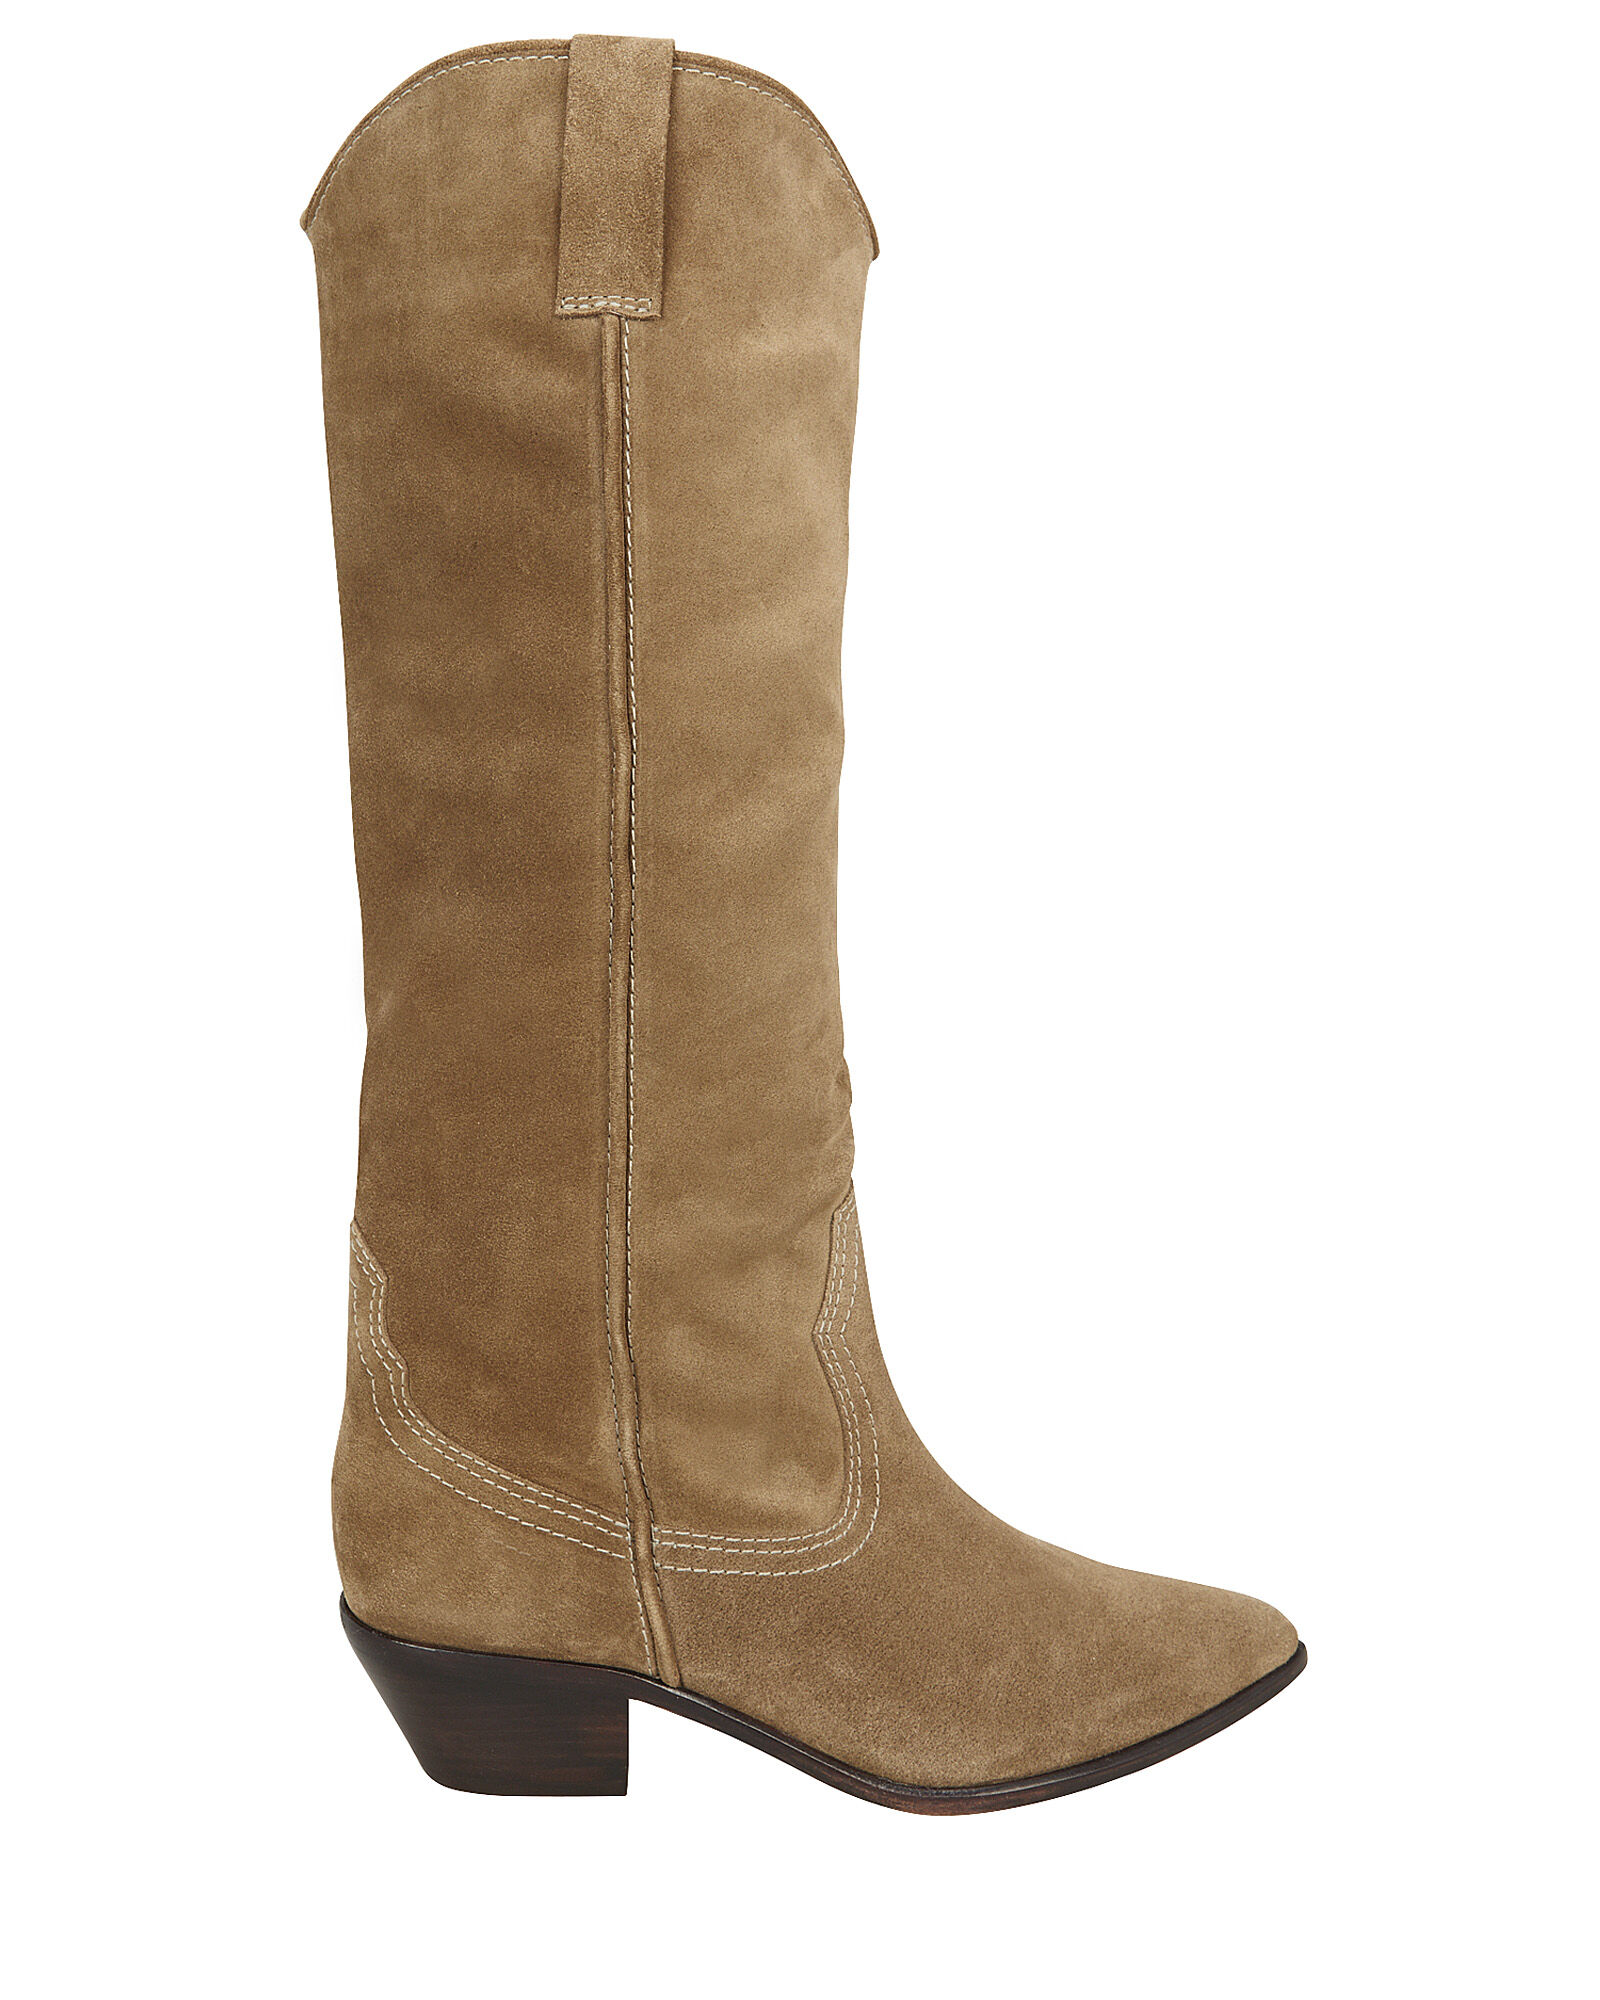 Dylan Western Knee High Boots